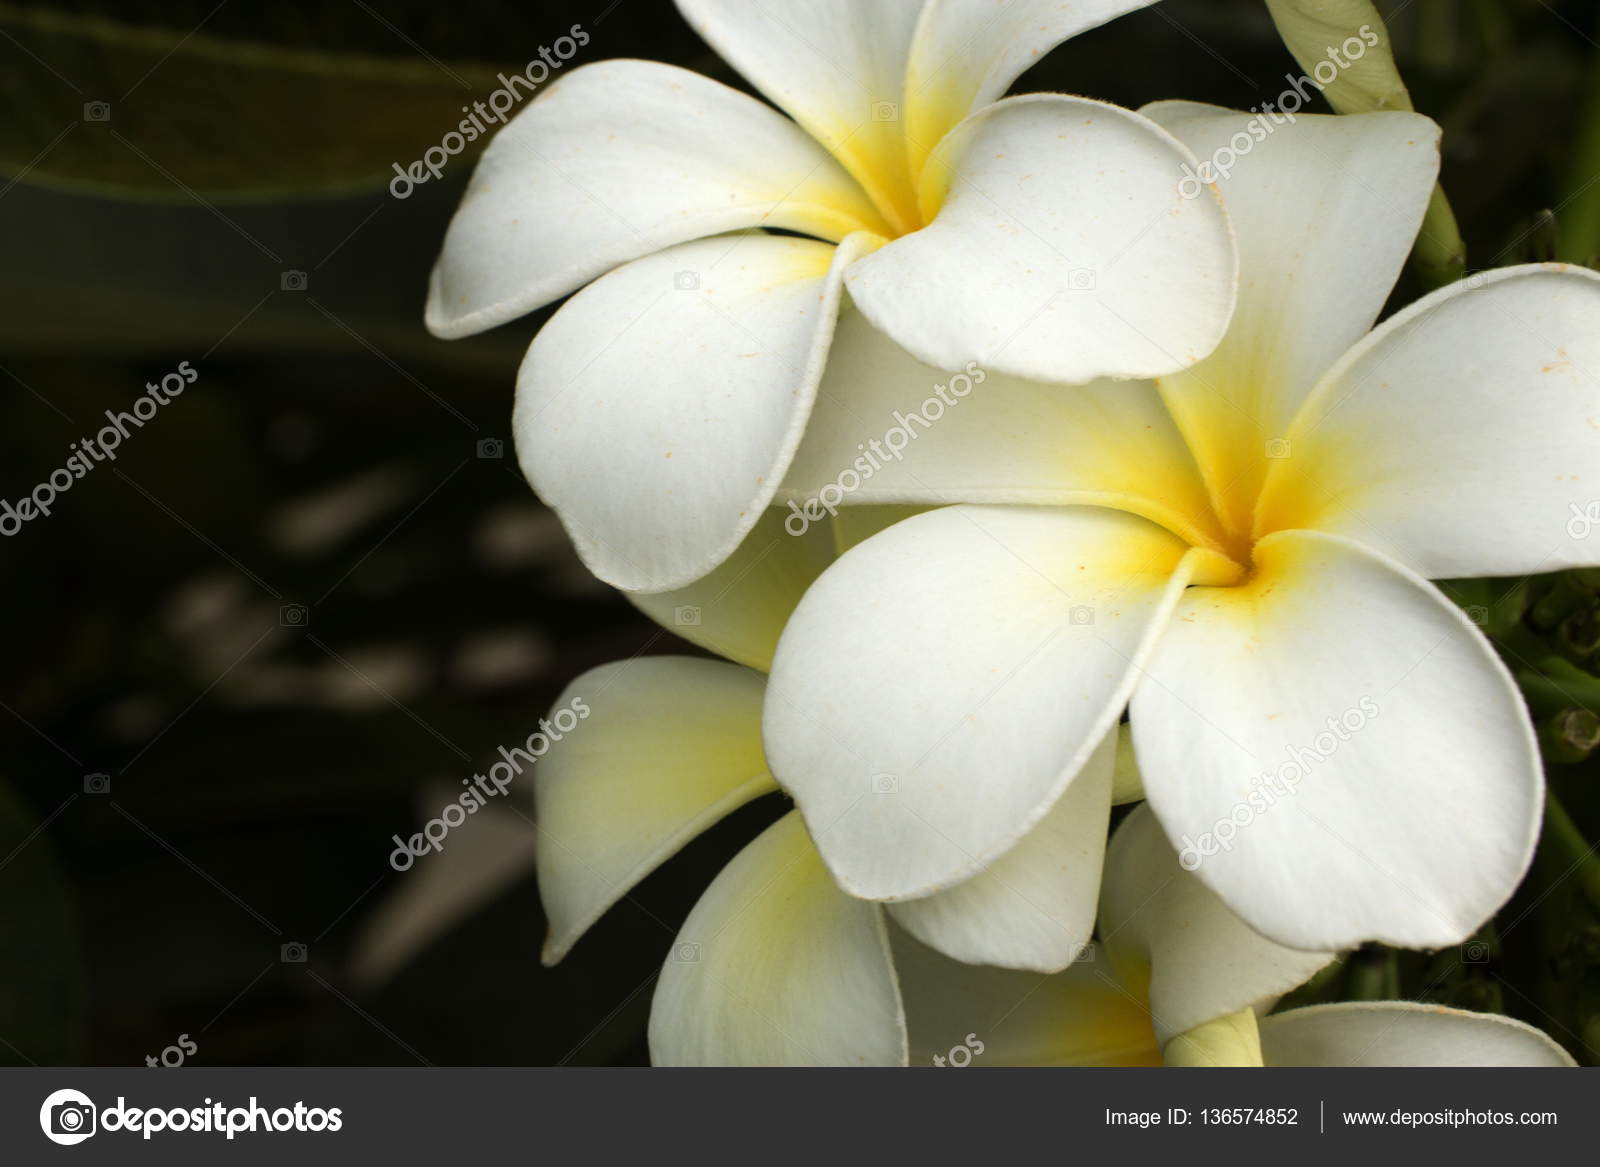 White plumeria flowers stock photo carrrot 136574852 five petal white flowers frangipani plumeria with yellow center on the green leaf background close up selective focus photo by carrrot mightylinksfo